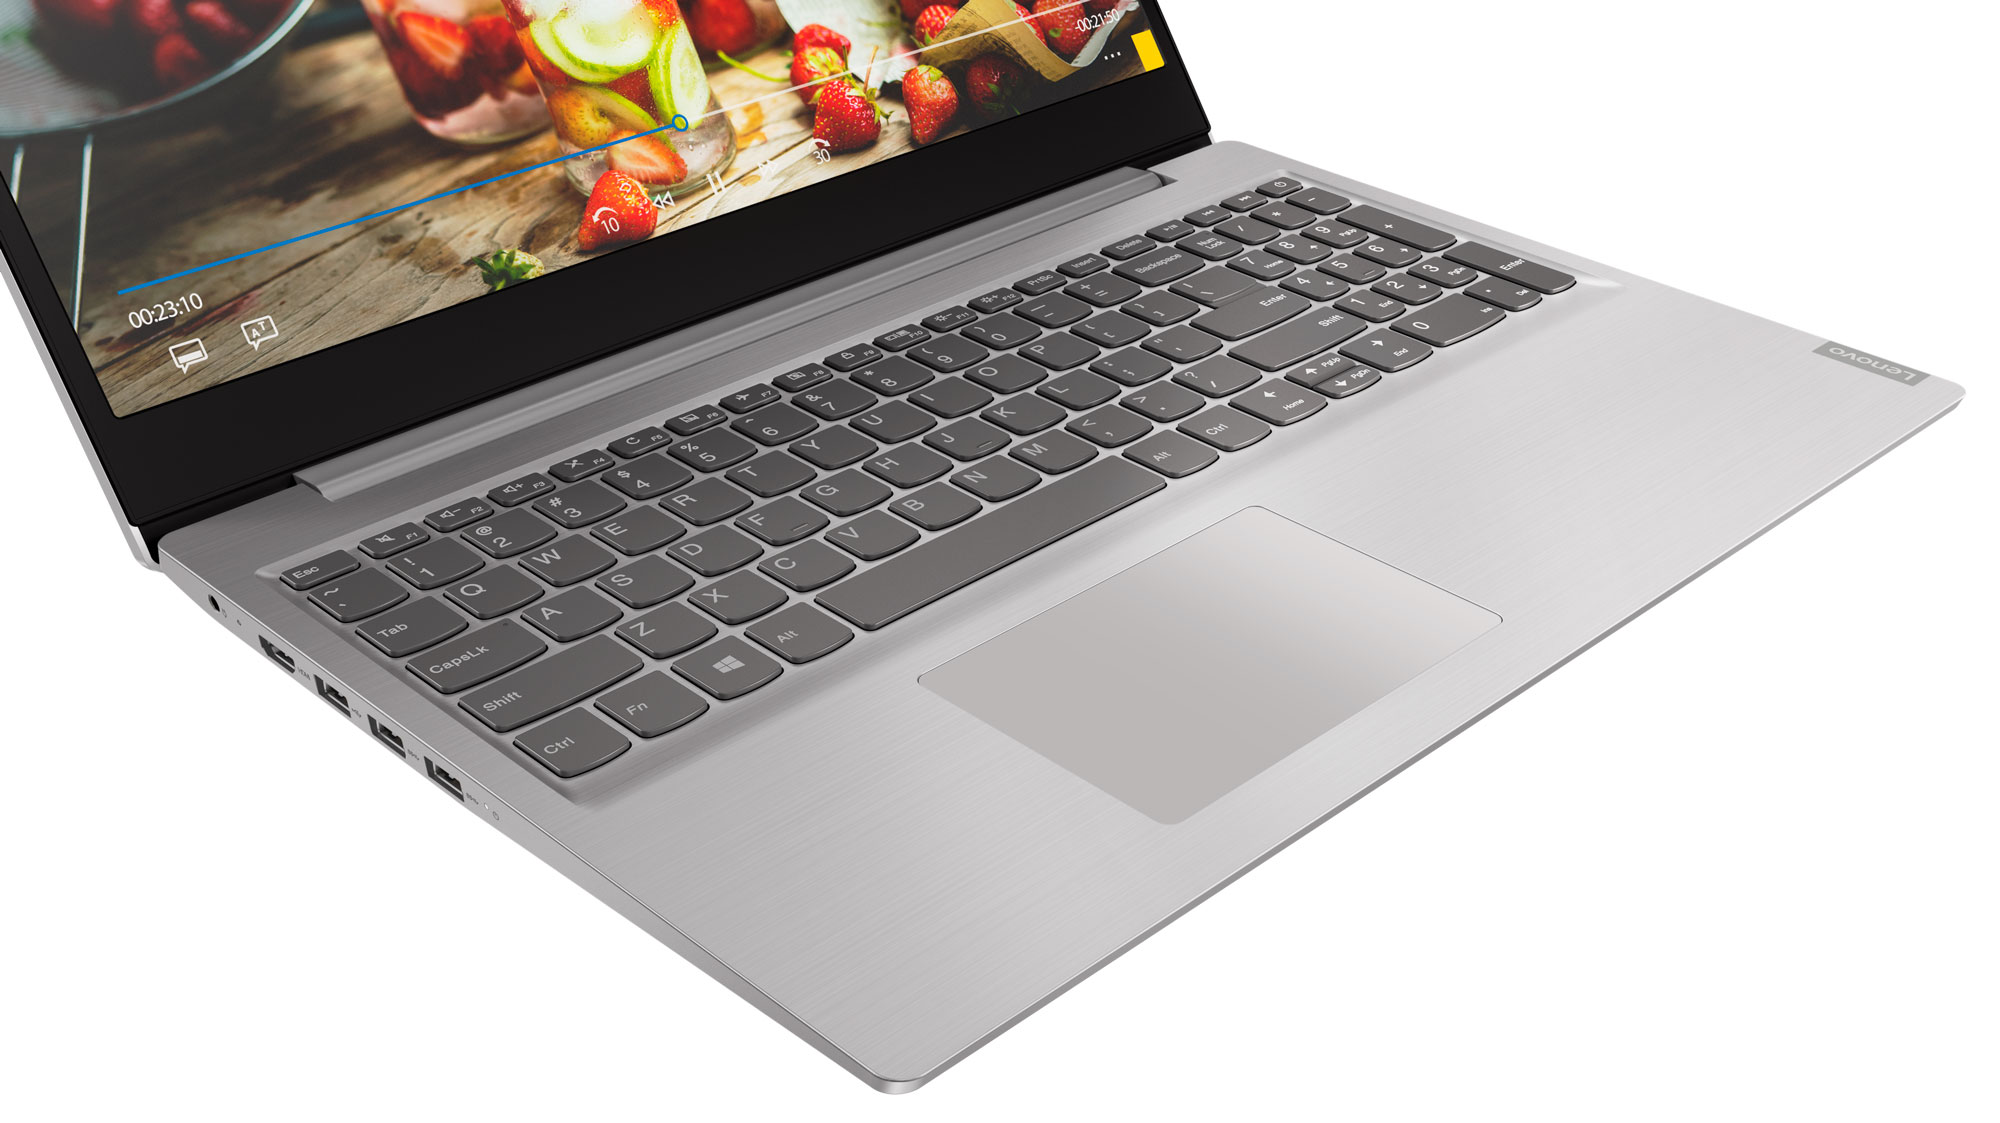 Фото  Ноутбук Lenovo ideapad S145-15IGM Platinum Grey (81MX003SRE)